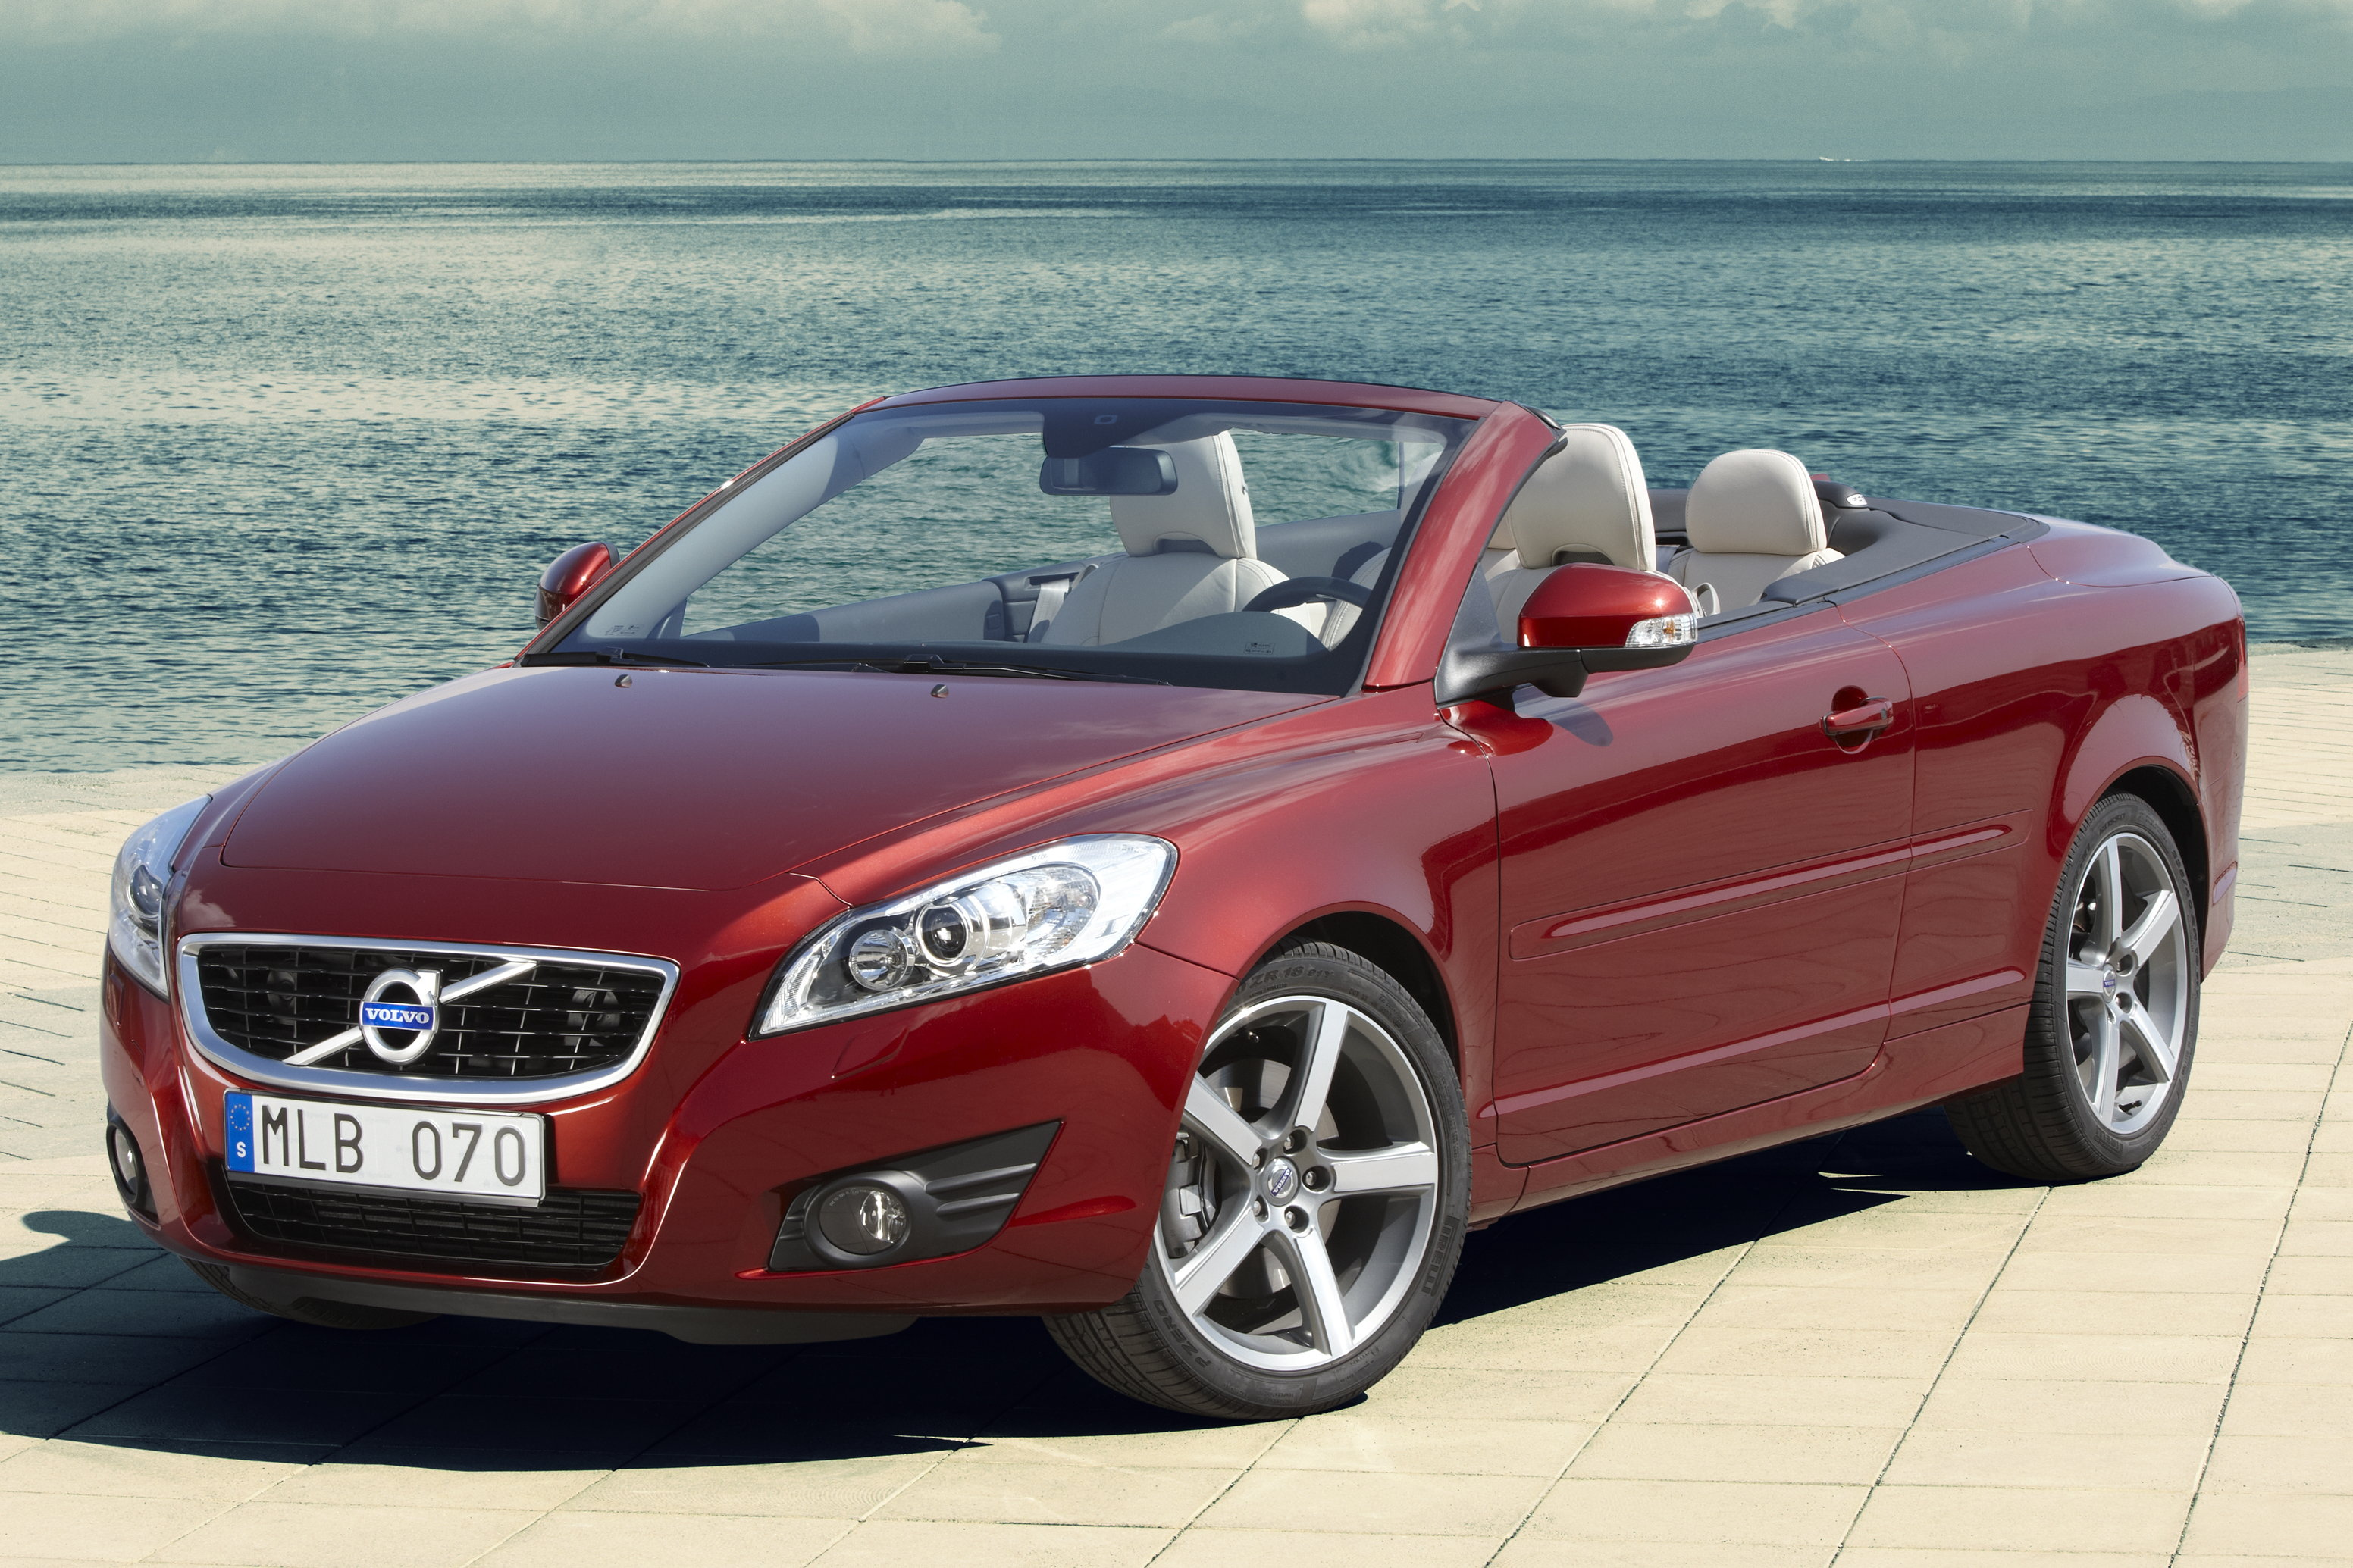 Download all volvo c70 2010 pictures 3 8 mb